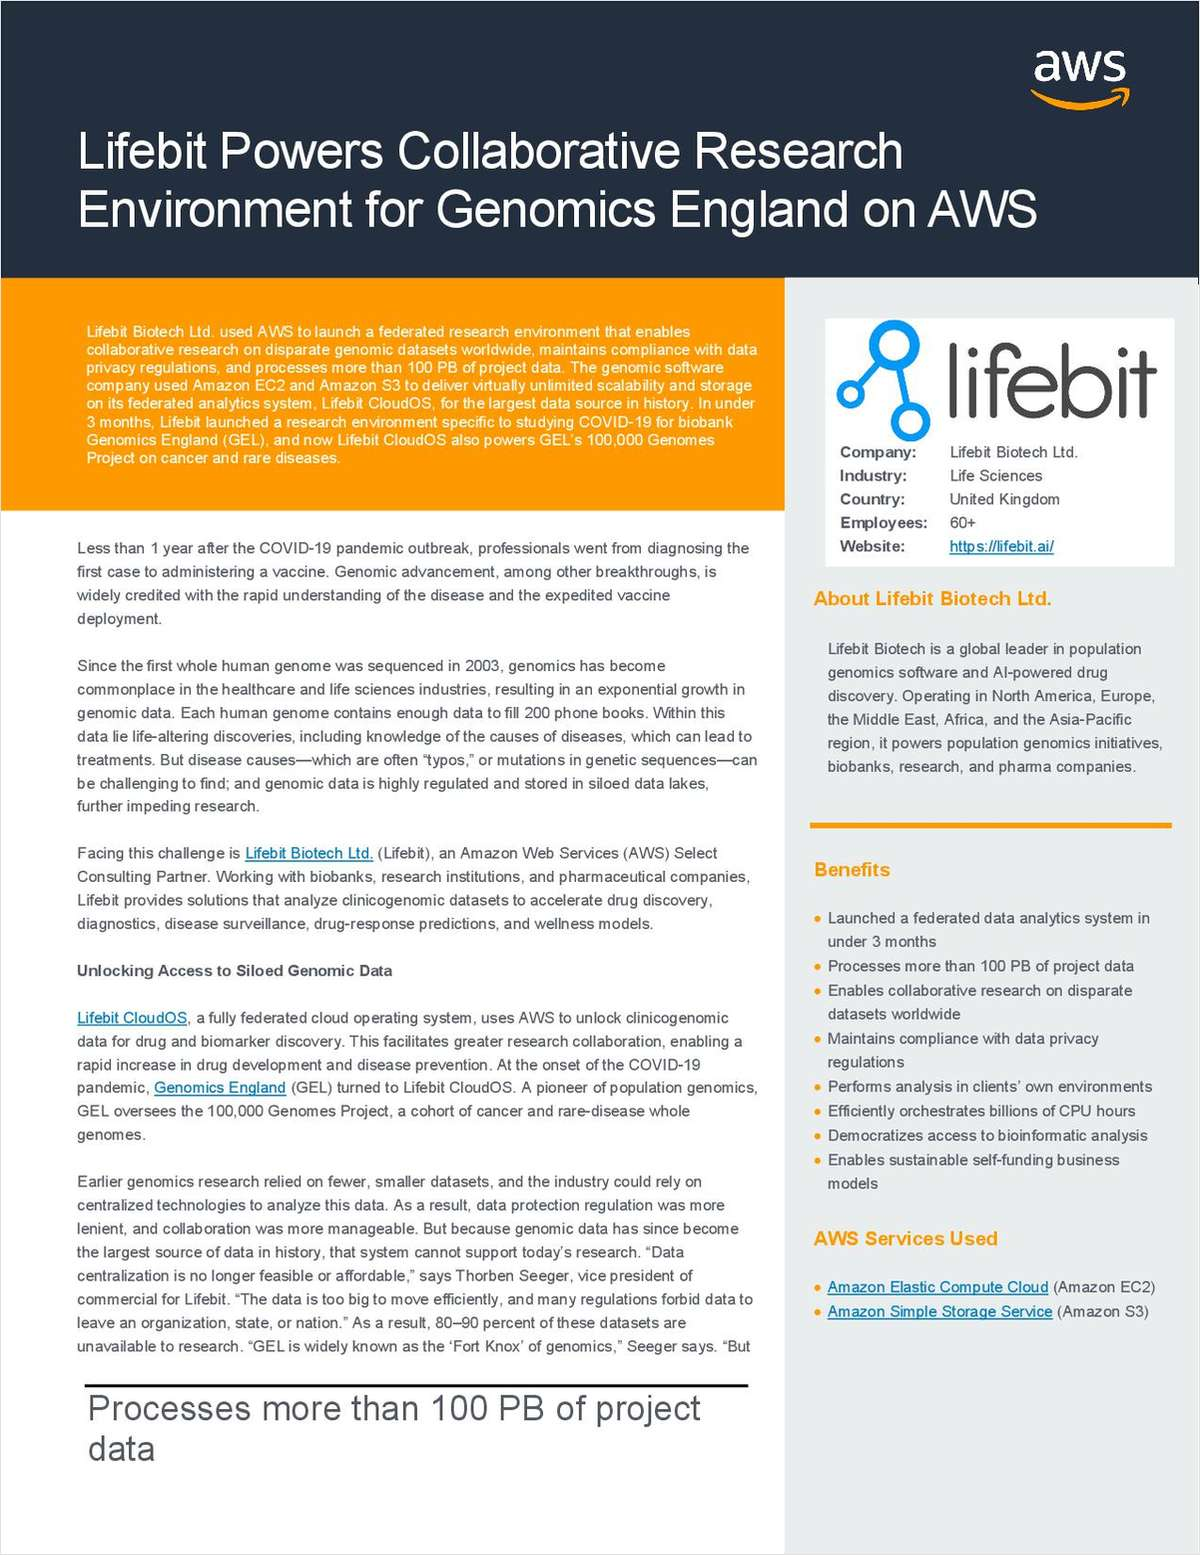 Lifebit Powers Collaborative Research Environment for Genomics England on AWS